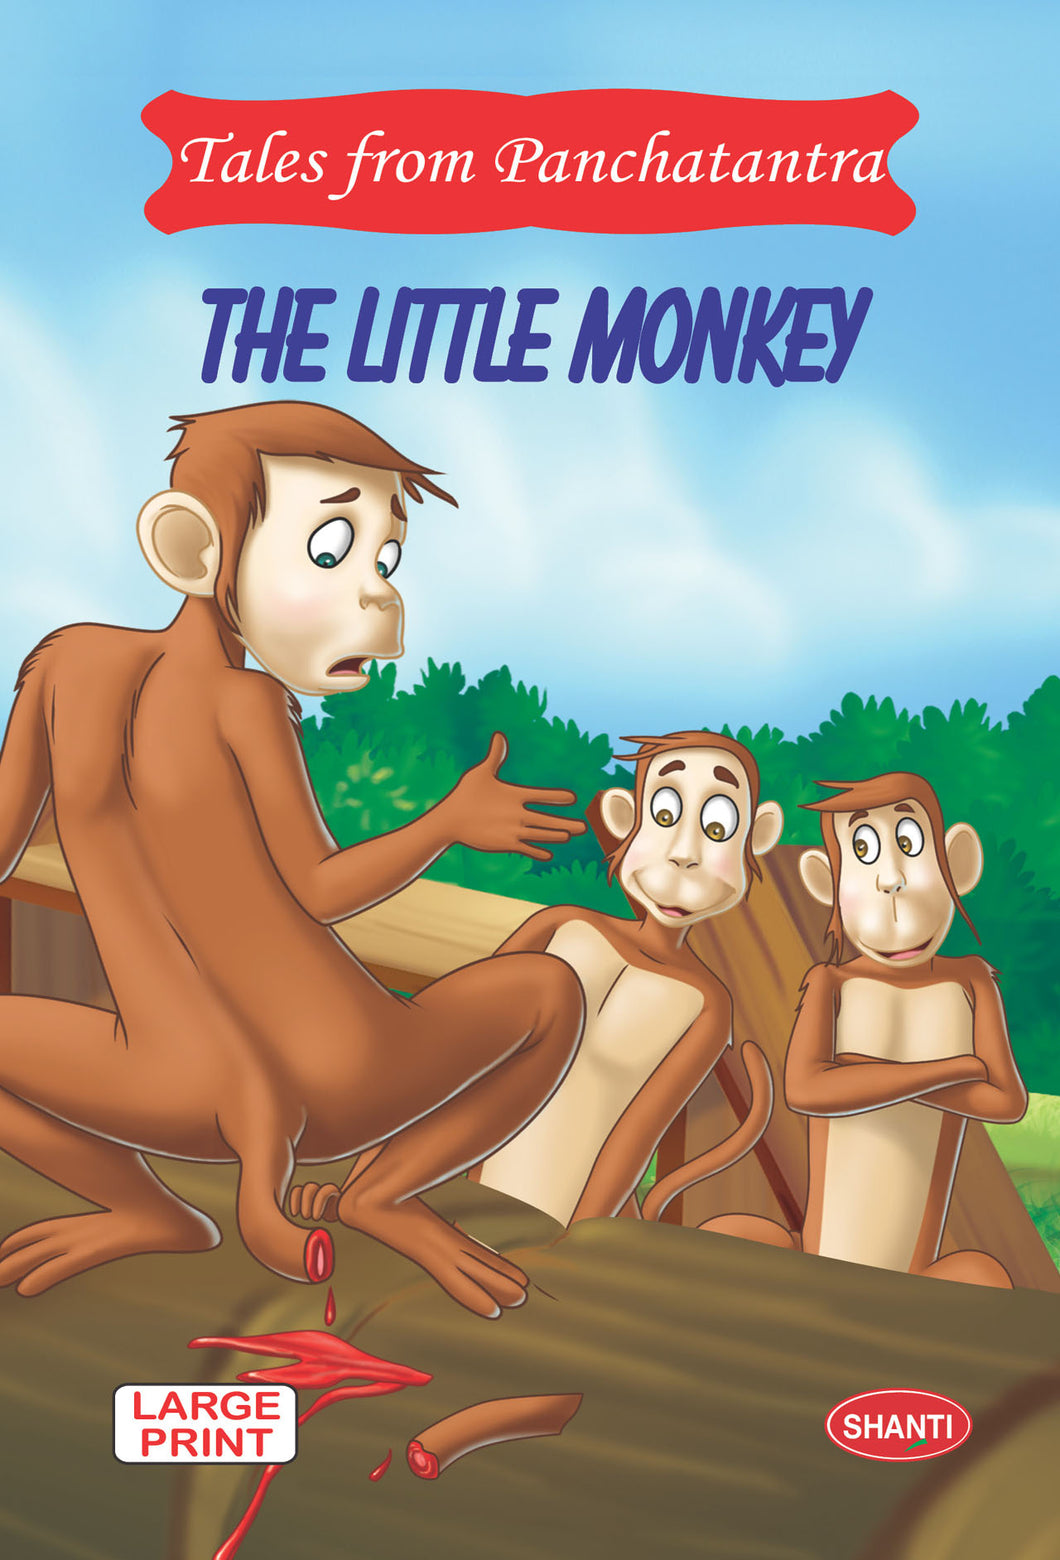 Panchatantra story books-Tales from Panchatantra - The Little Monkey (English)